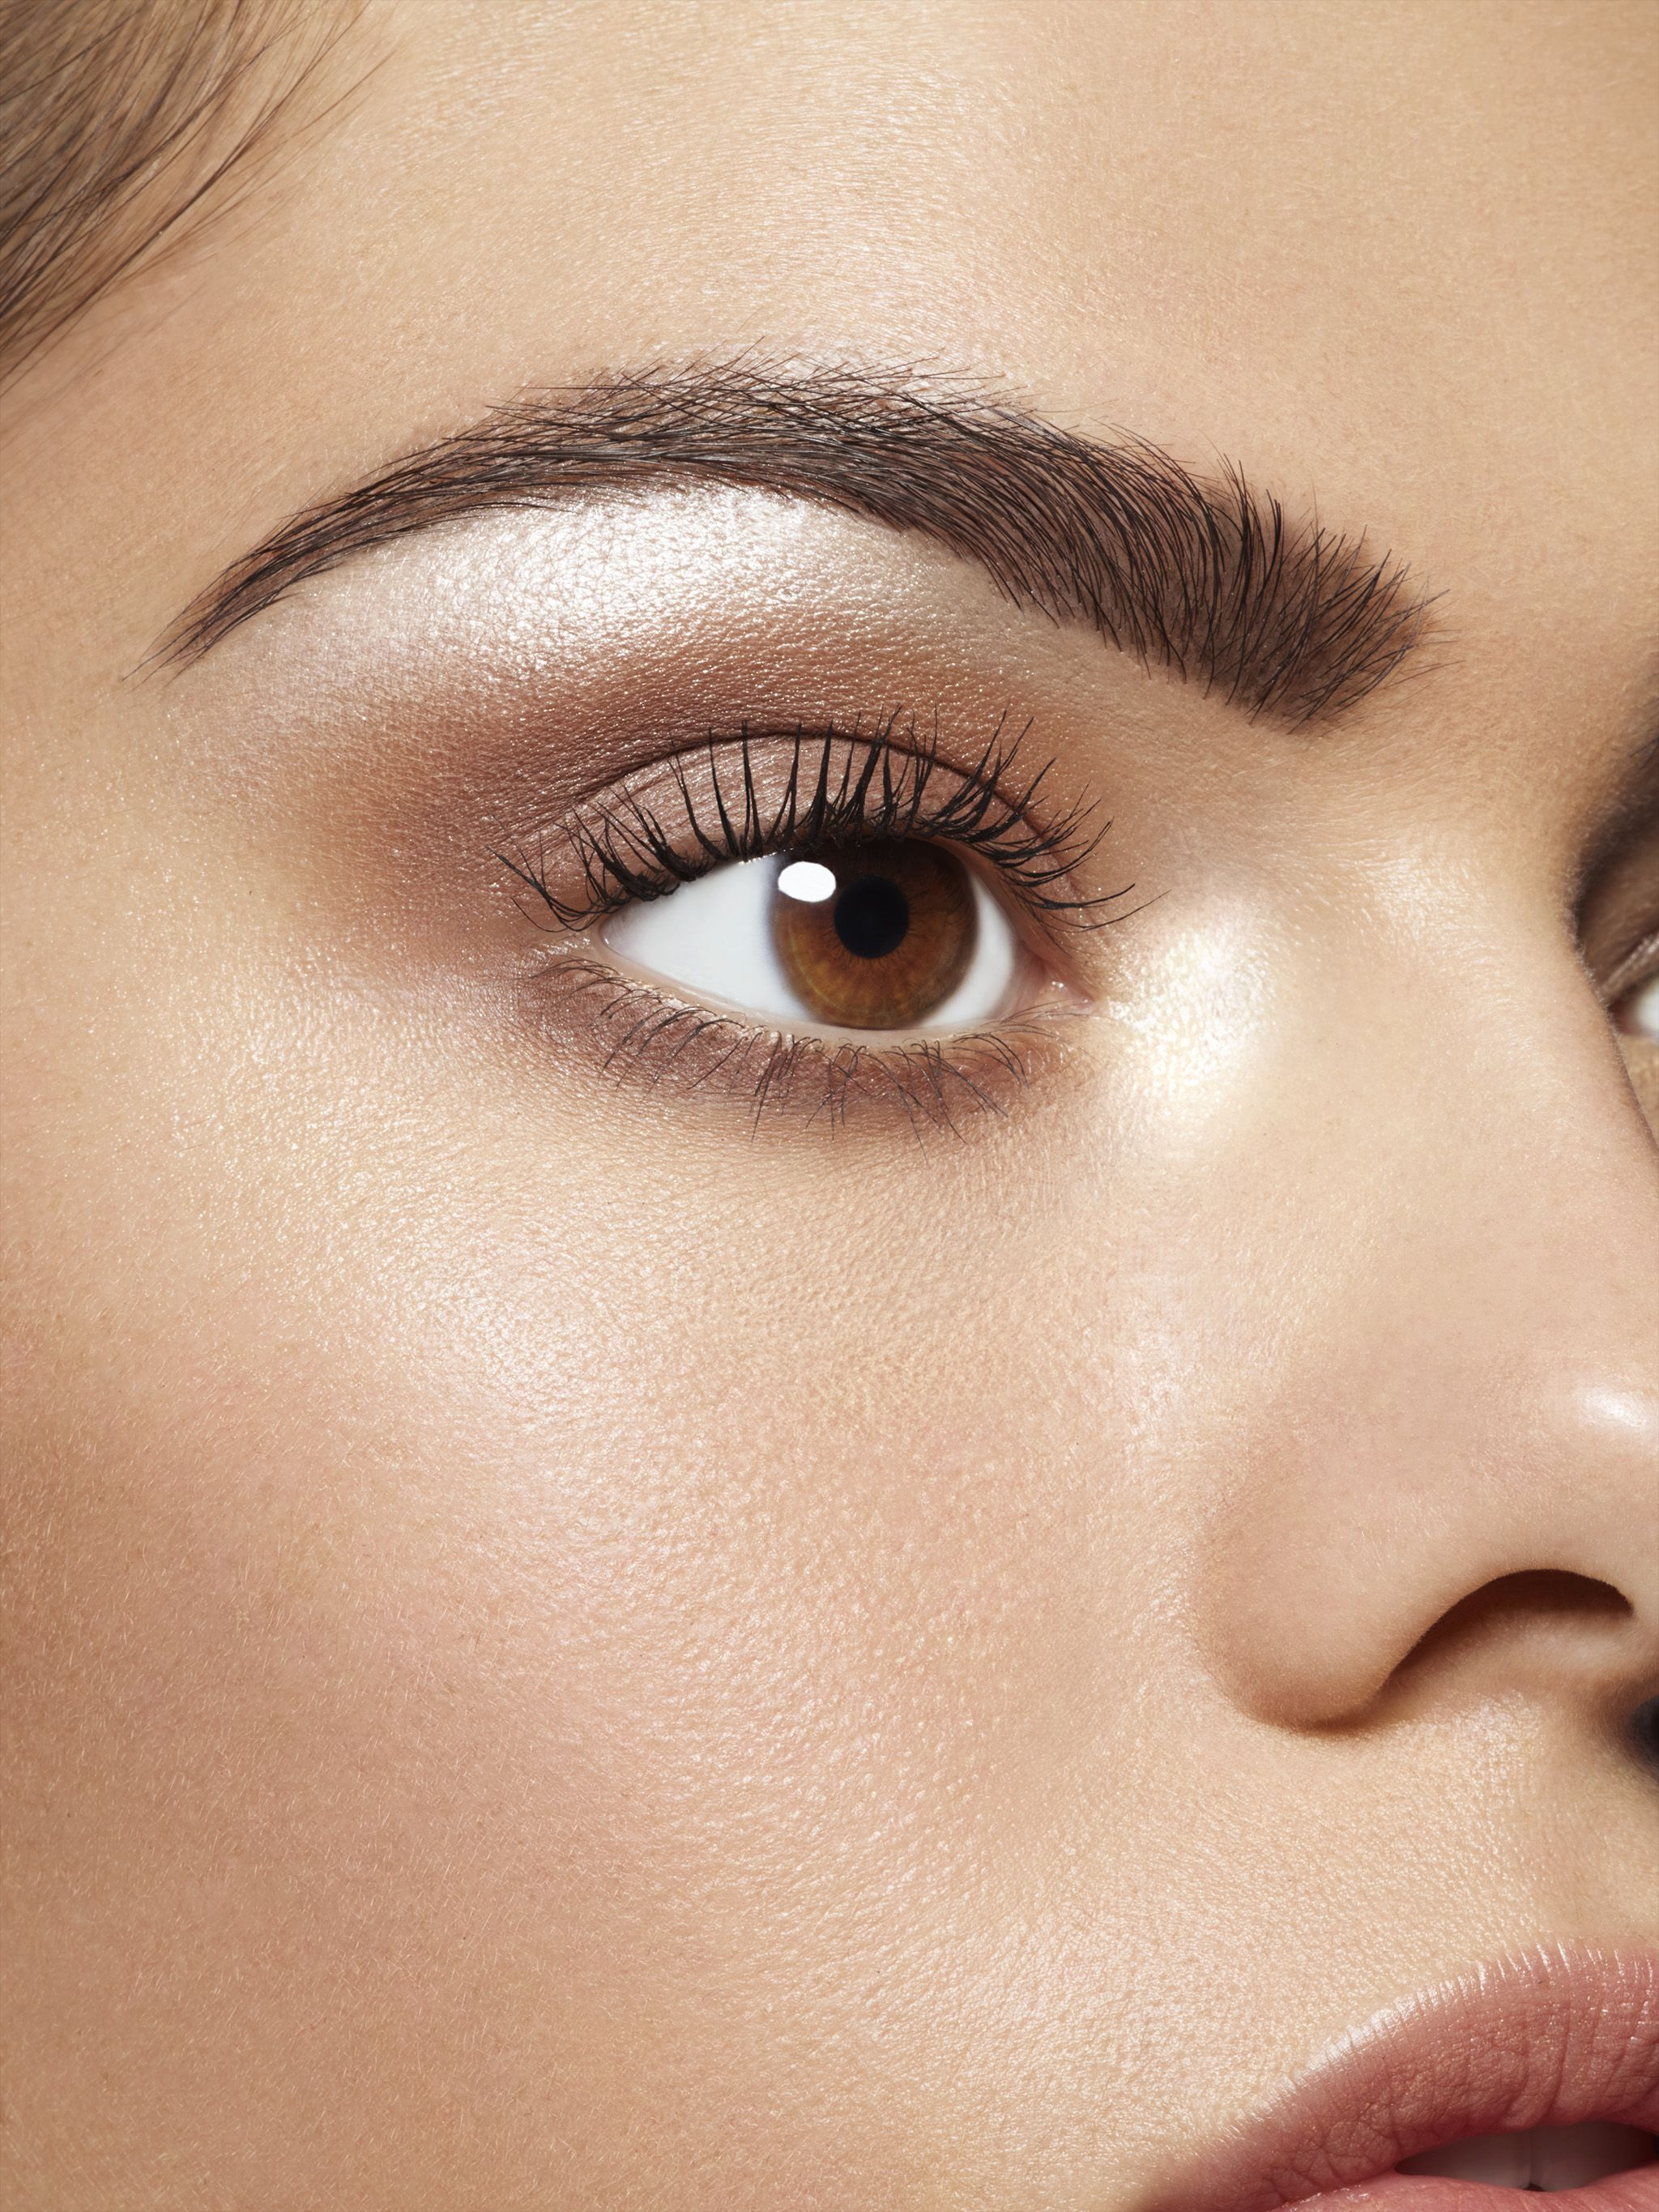 Get beautiful brows and even bigger eyes with the Rimmel London Brow This Way Highlighting pencil. Simply apply t… | Rimmel eyebrow pencil, Arch brows, Big eyebrows